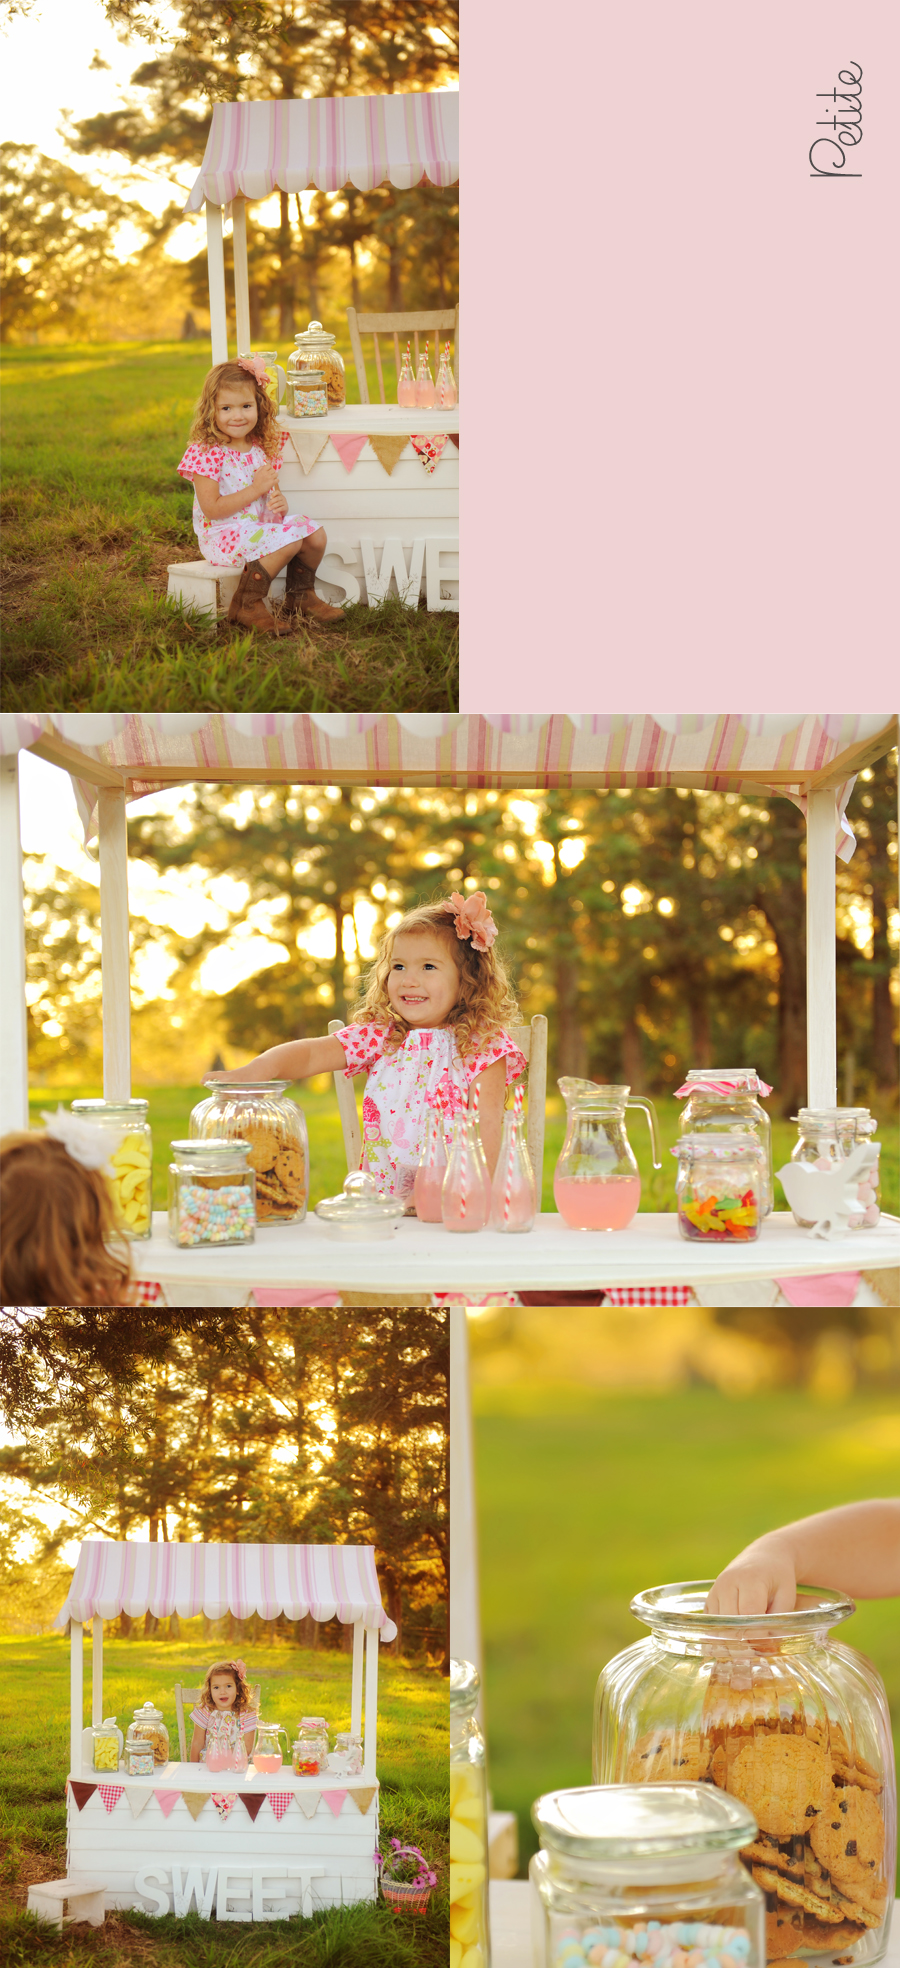 child at a candy stall eating cookies sweet petite clothing